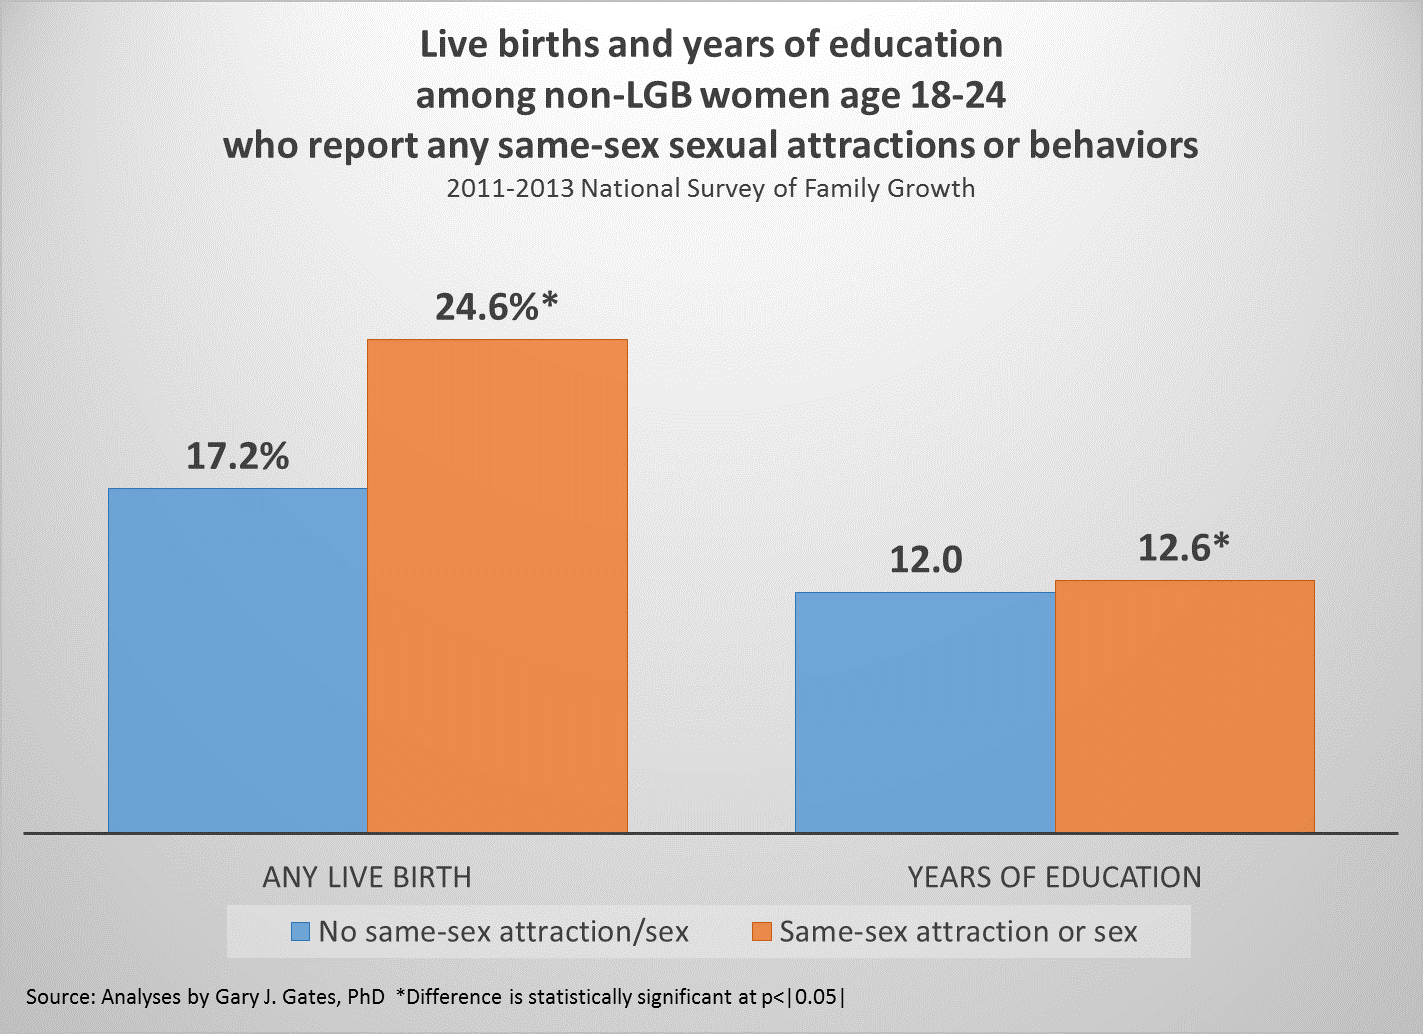 Live births and years of education by same-sex behavior and attraction